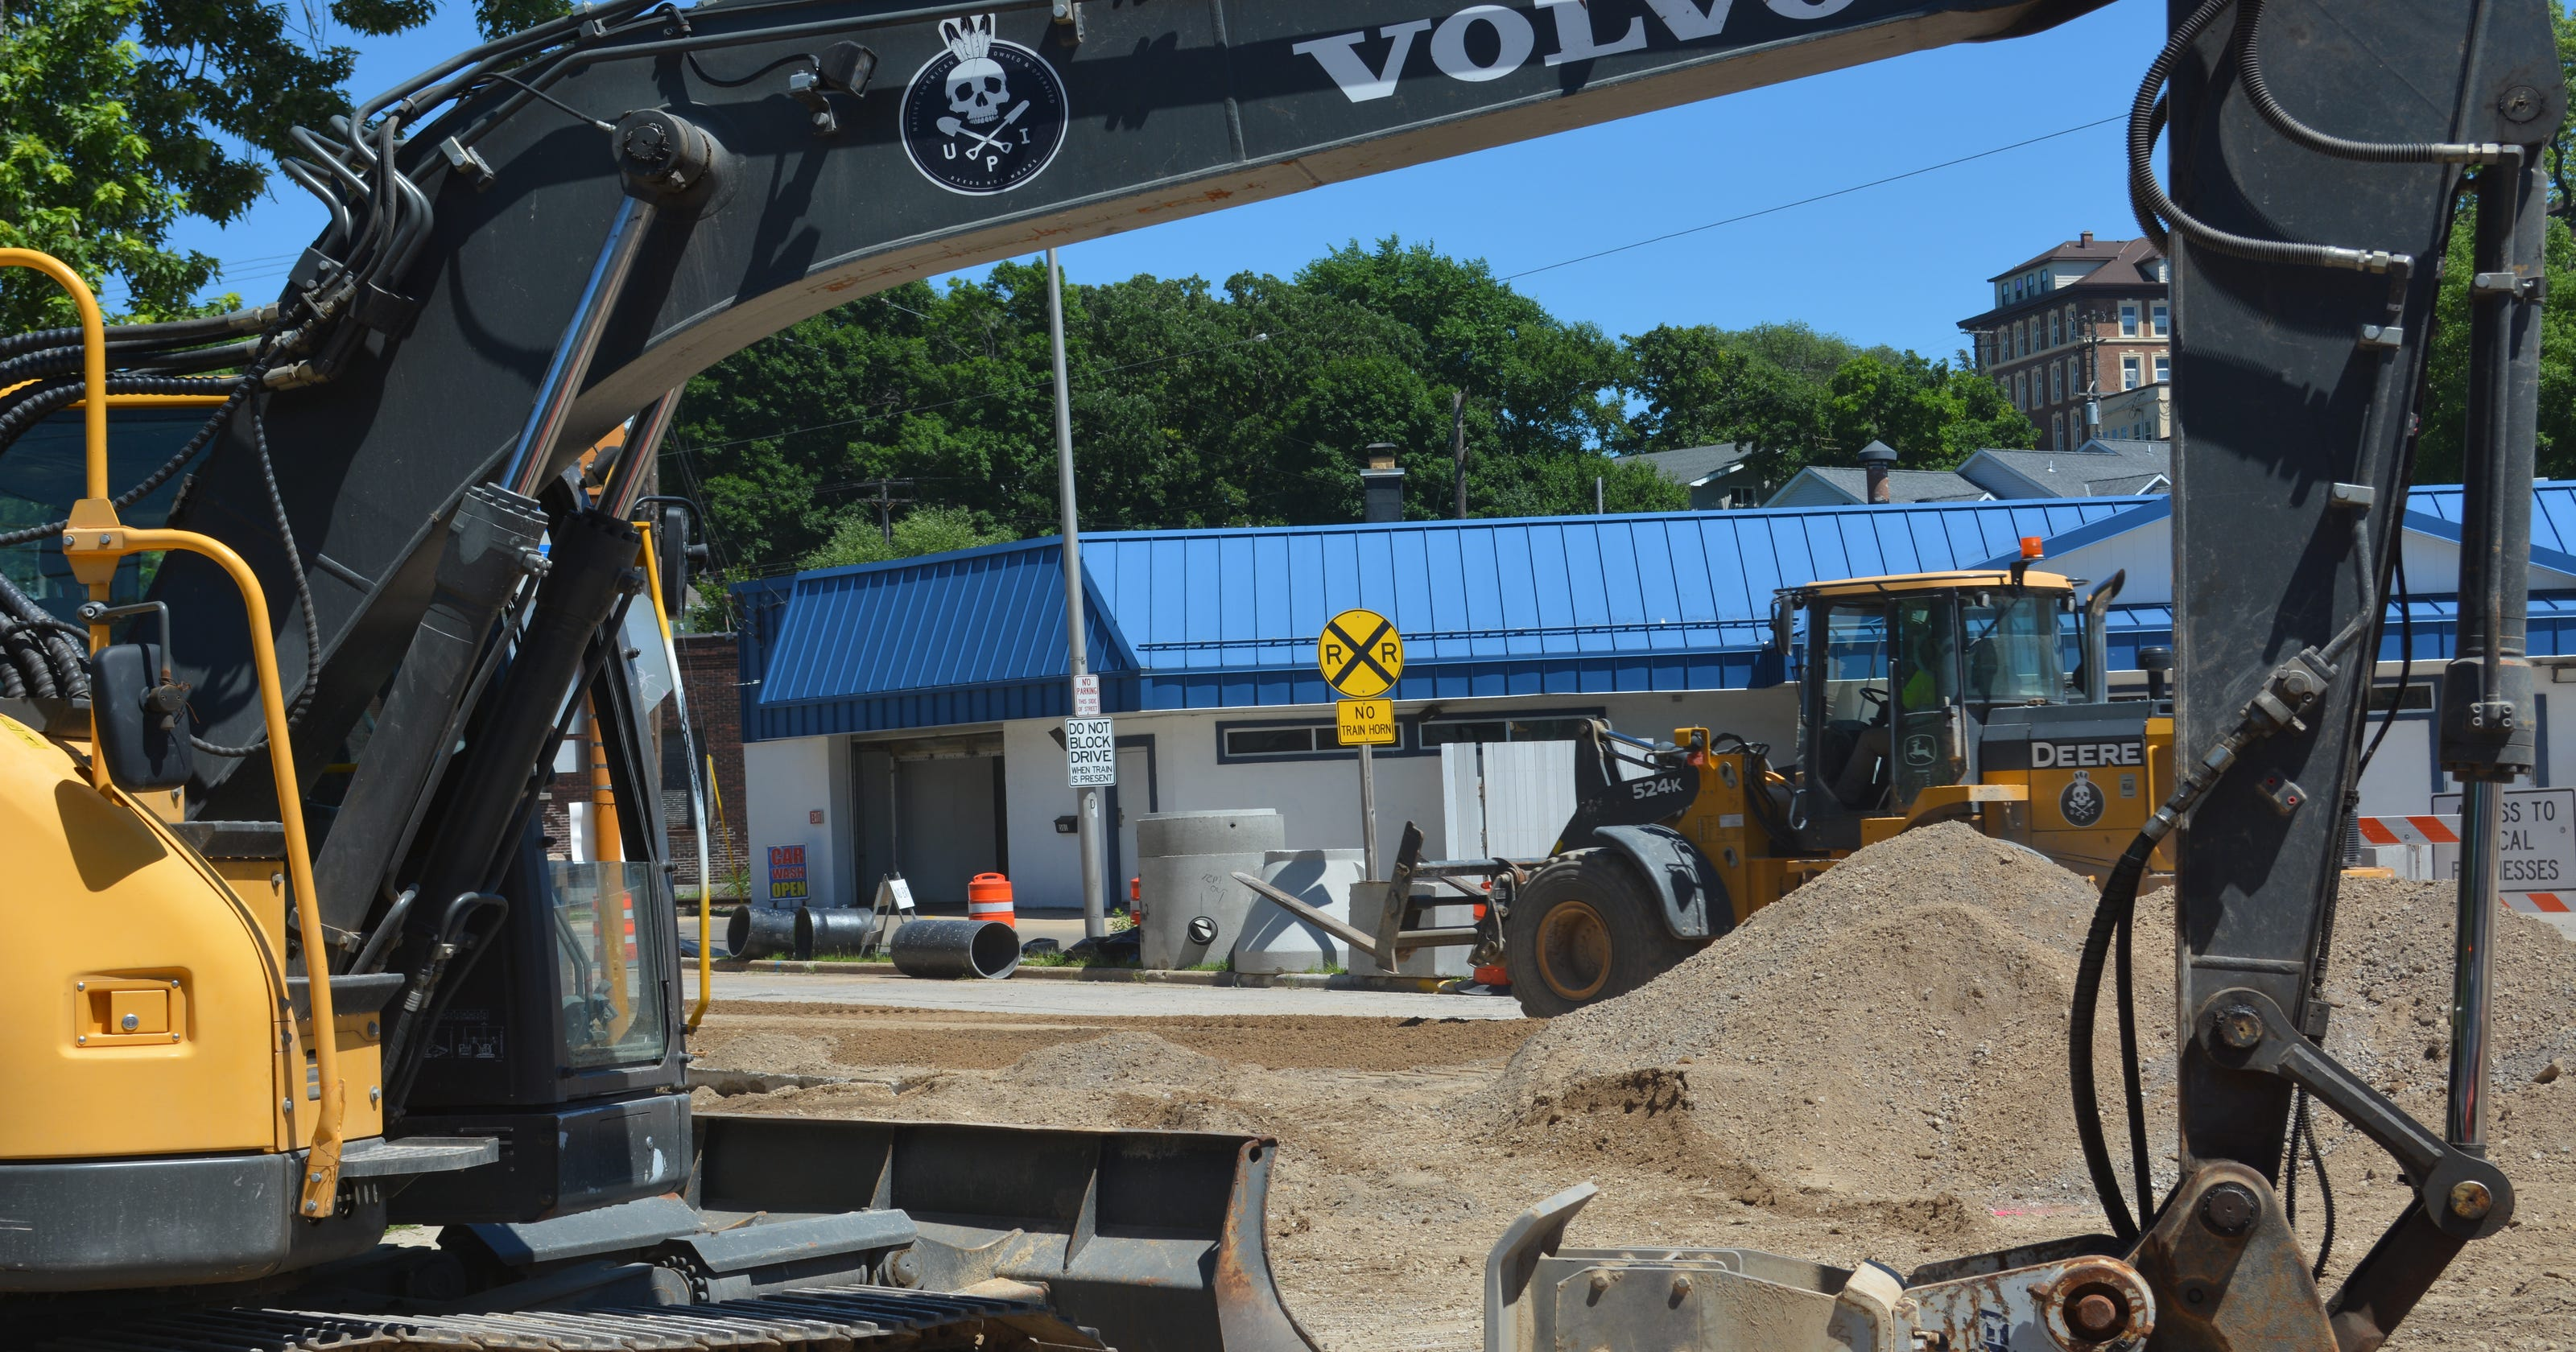 Businesses Struggle As Main St. Road Work Stretches West